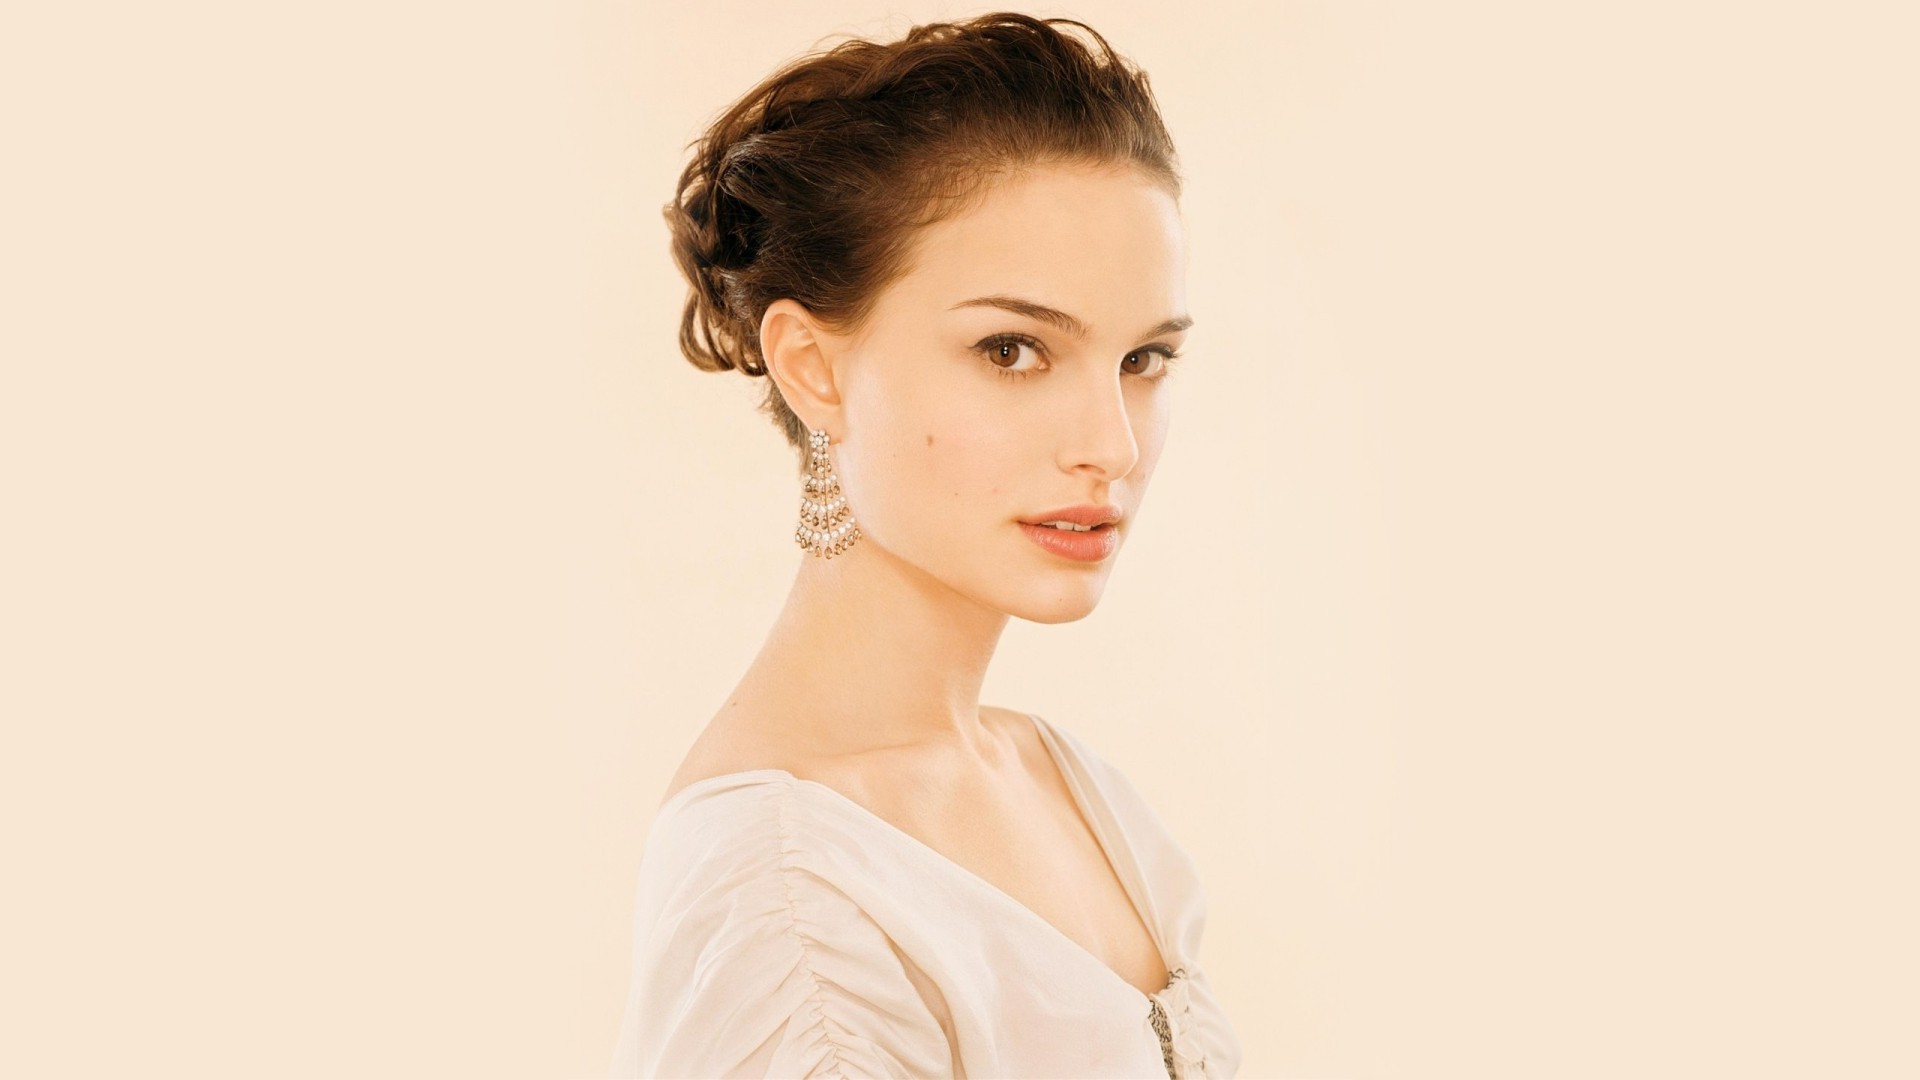 Natalie Portman Wallpapers High Quality